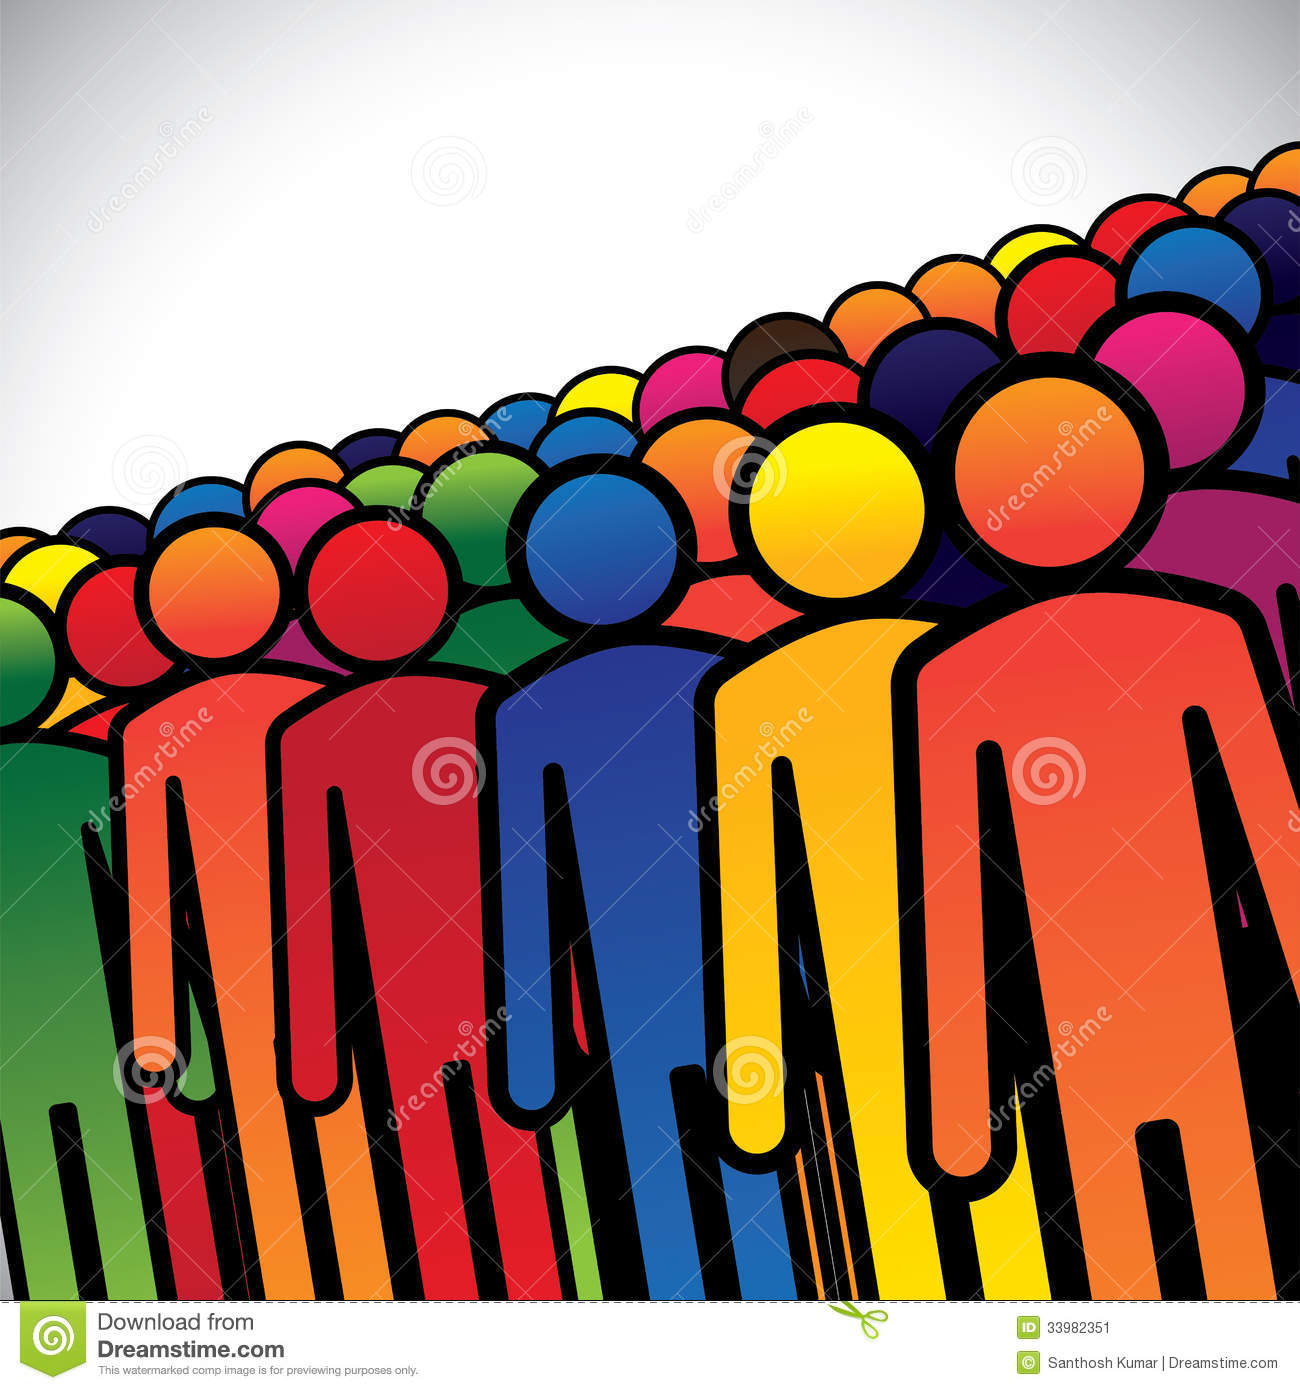 abstract colorful group of people or workers or employees